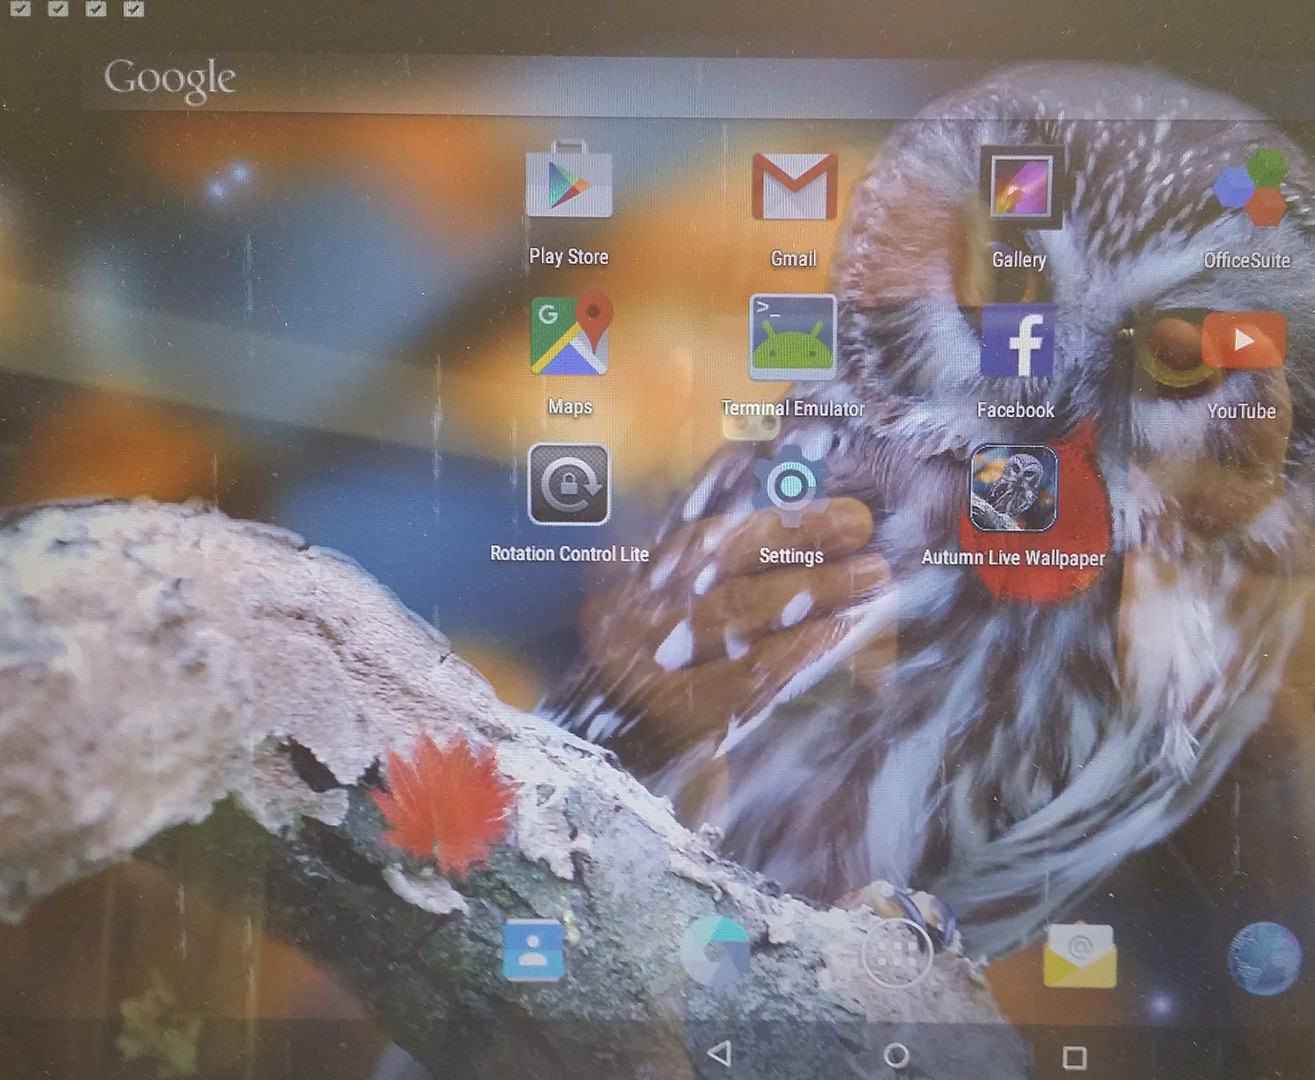 Run Android 5 1 1 Lollipop on Your PC with AndEX Live CD, an Android